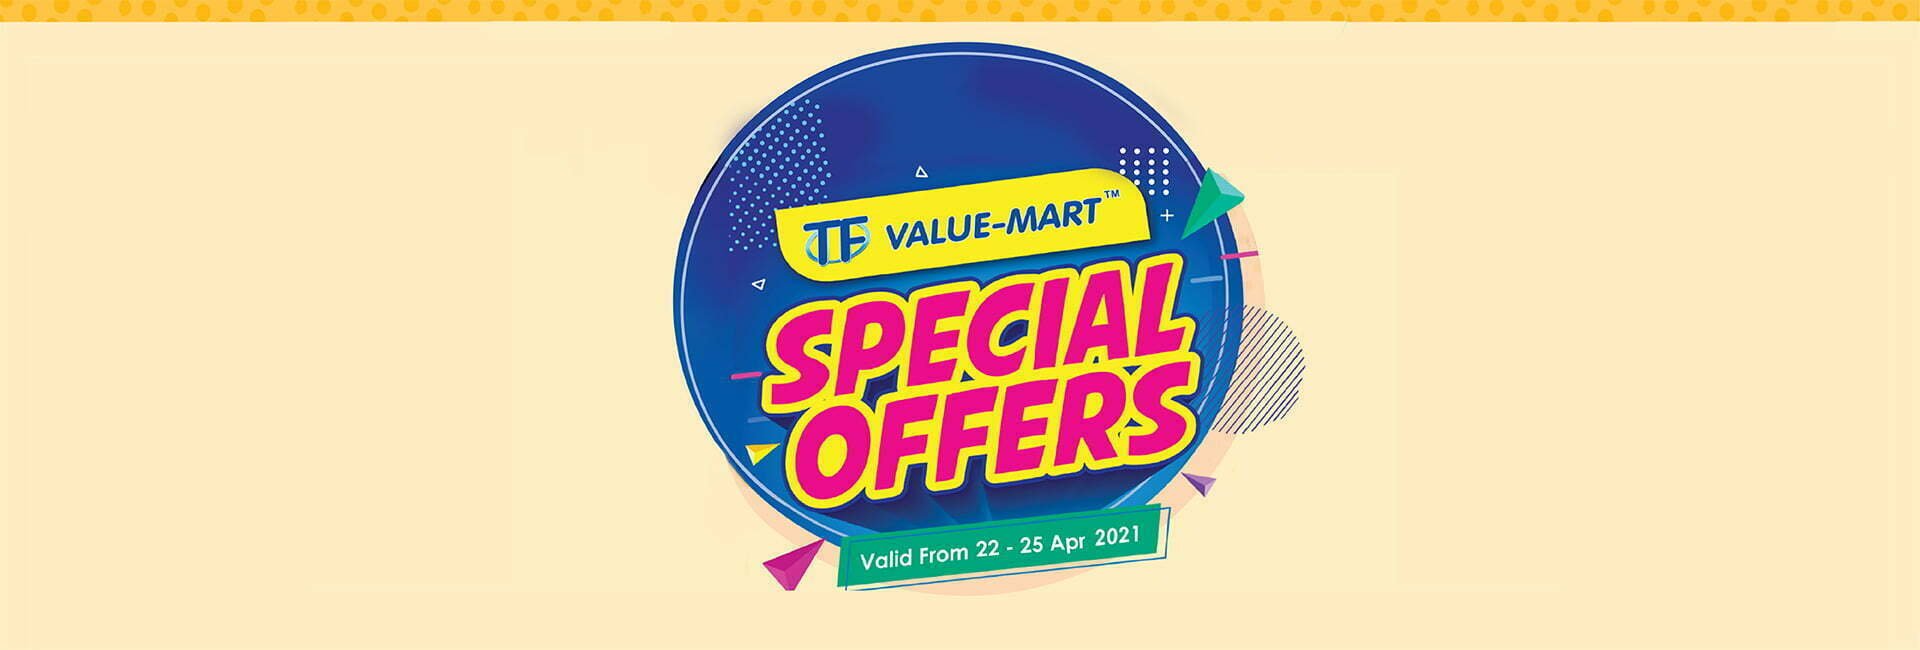 Special superstore offers in Malaysia